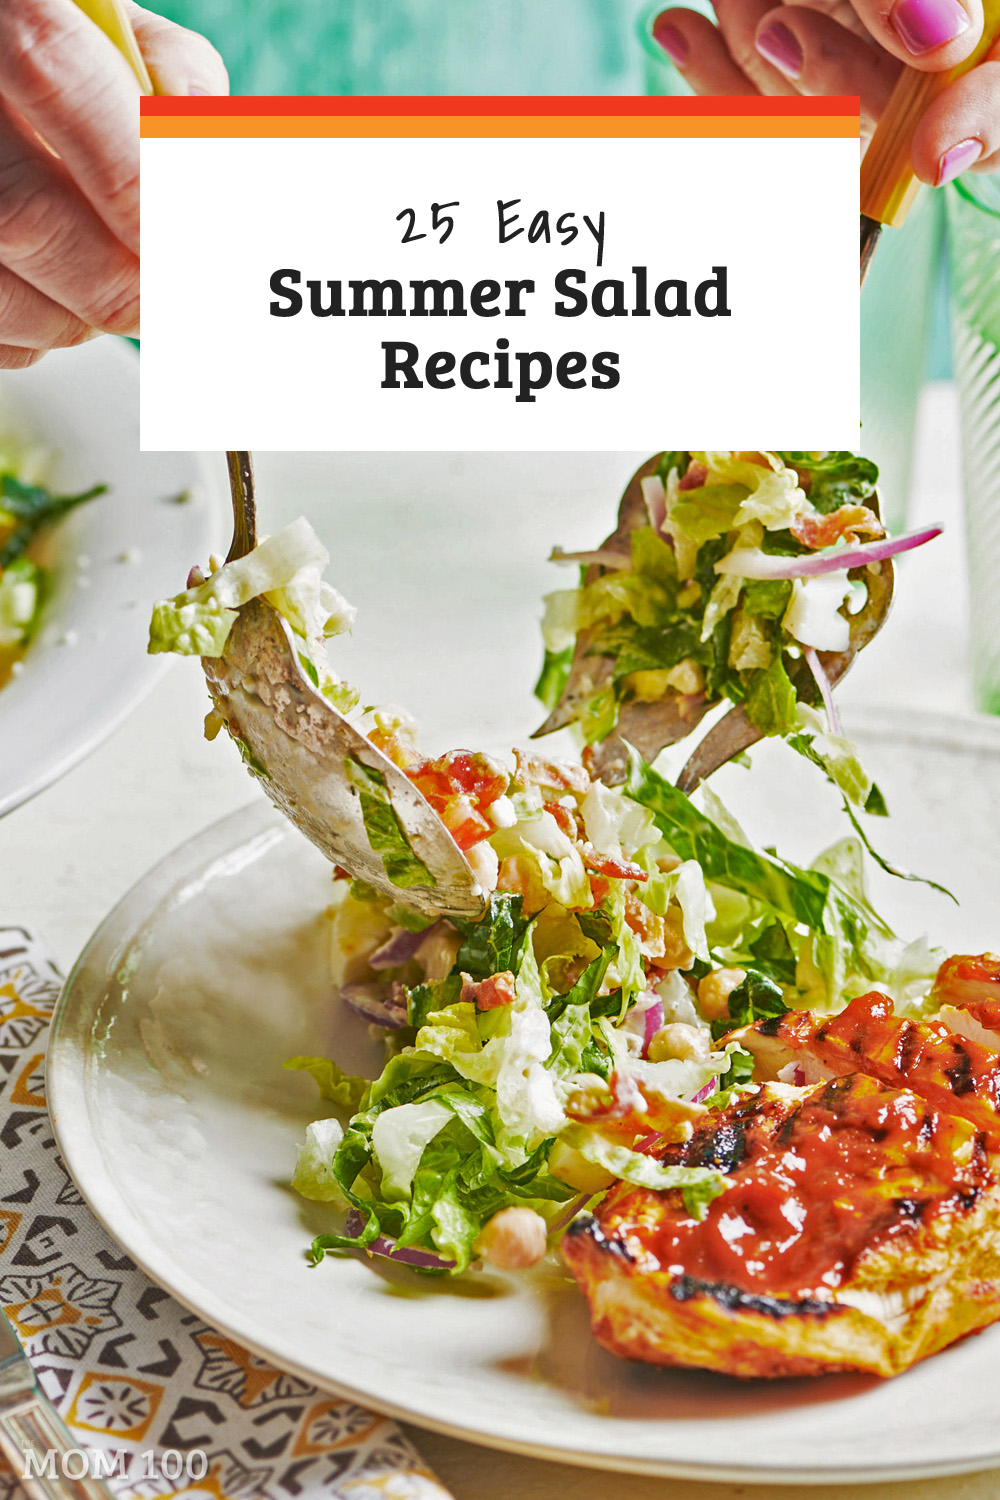 25 Easy Summer Salad Recipes: Salad recipes and inspiration for the warm months—from main dish salads to side salads, this collection of recipes has you covered. #summer #salad #healthy